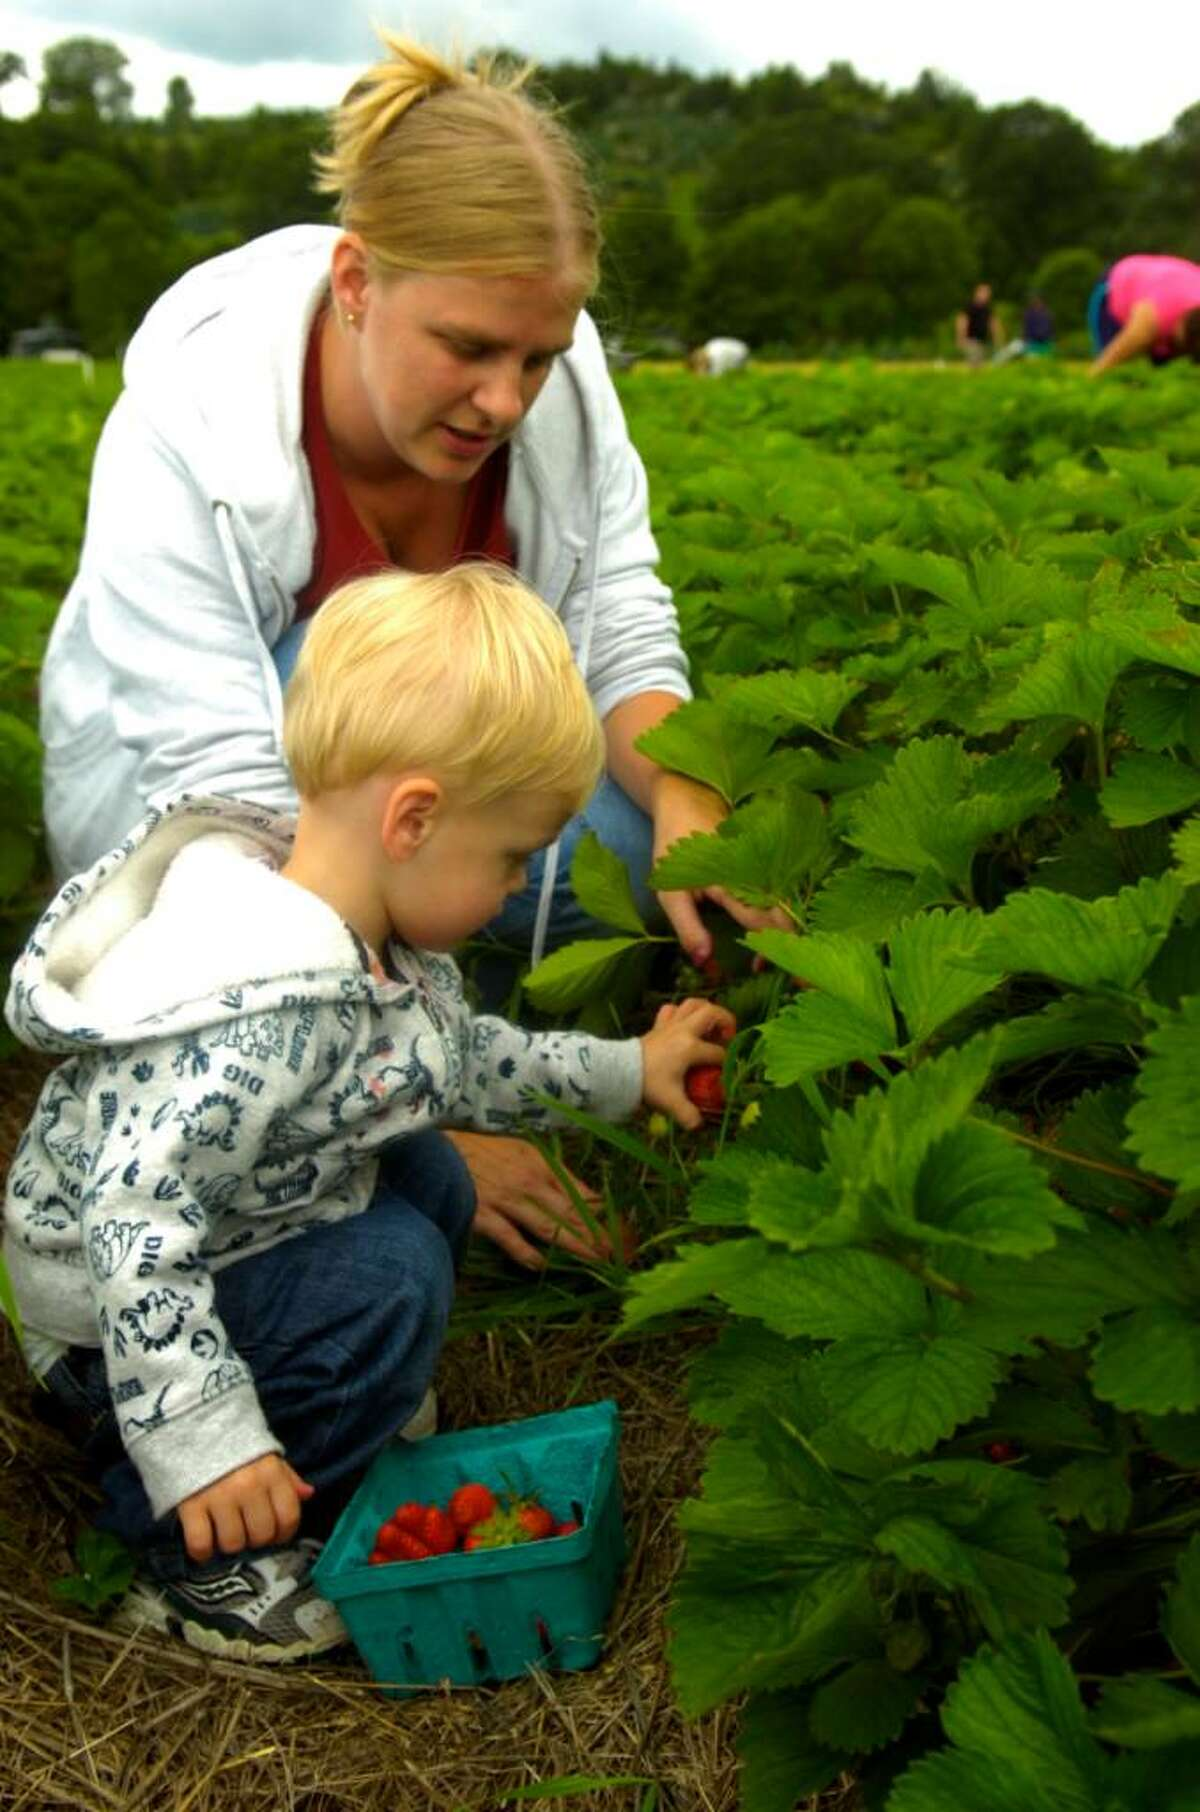 Seymour residents Trey Burgess, 2, and his mother, Michelle, pick strawberries at Jones Family Farms in Shelton on Friday, June 11, 2010.